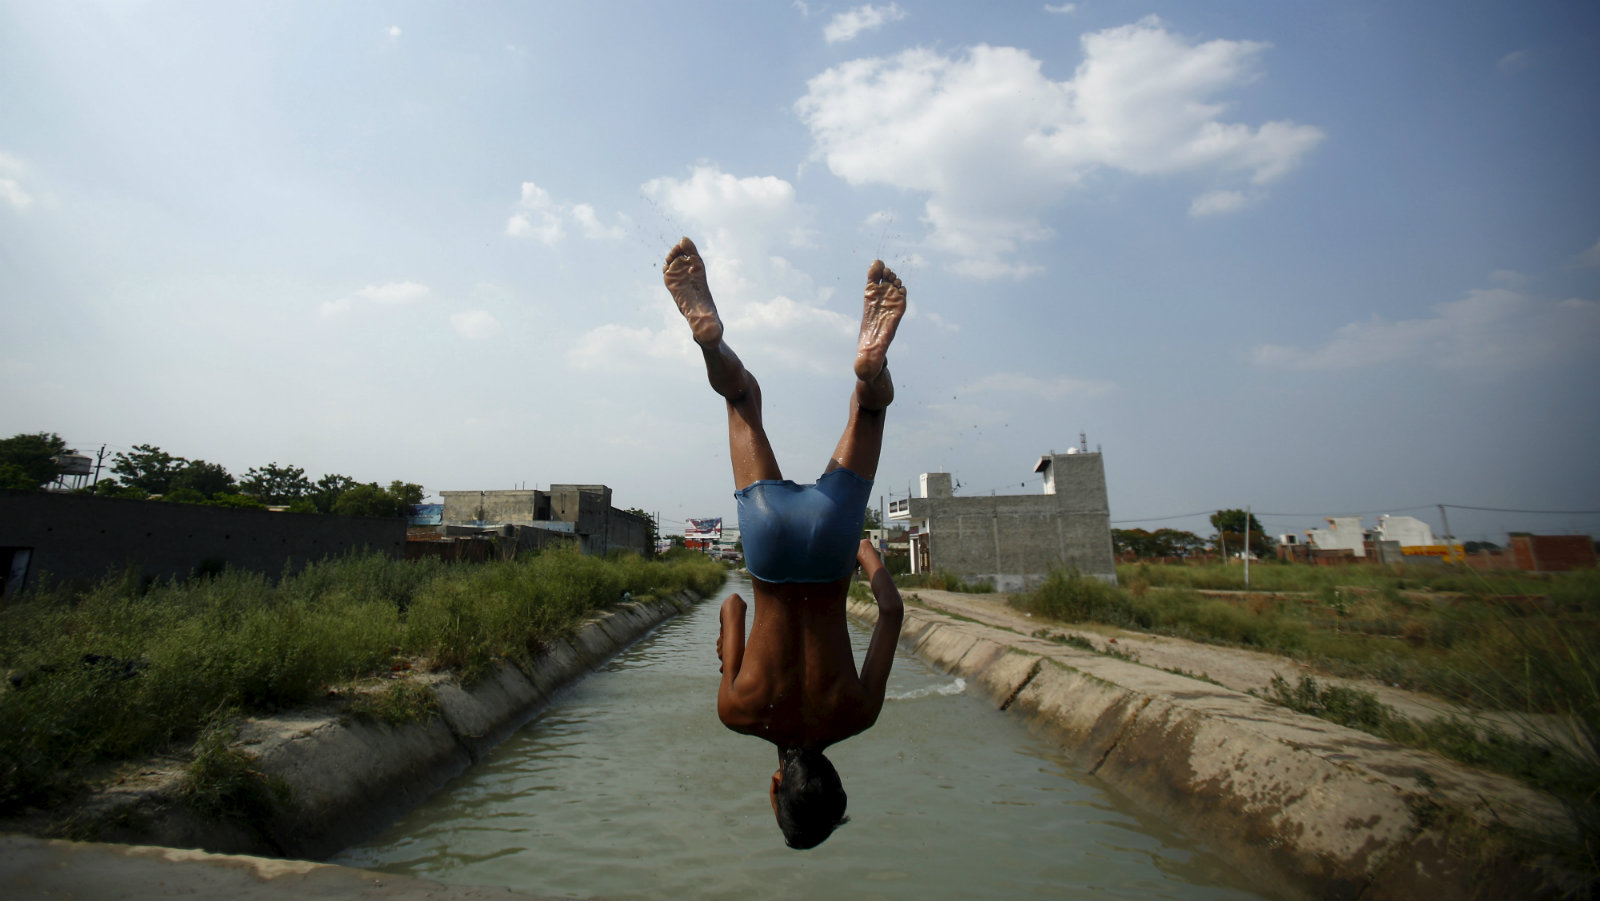 A boy jumps into a water canal on a hot summer day in Uttar Pradesh, India, June 4, 2015. India's finance minister on Thursday dismissed fears of the first drought in six years, just days after the weather office downgraded the forecast for monsoon rains this summer.